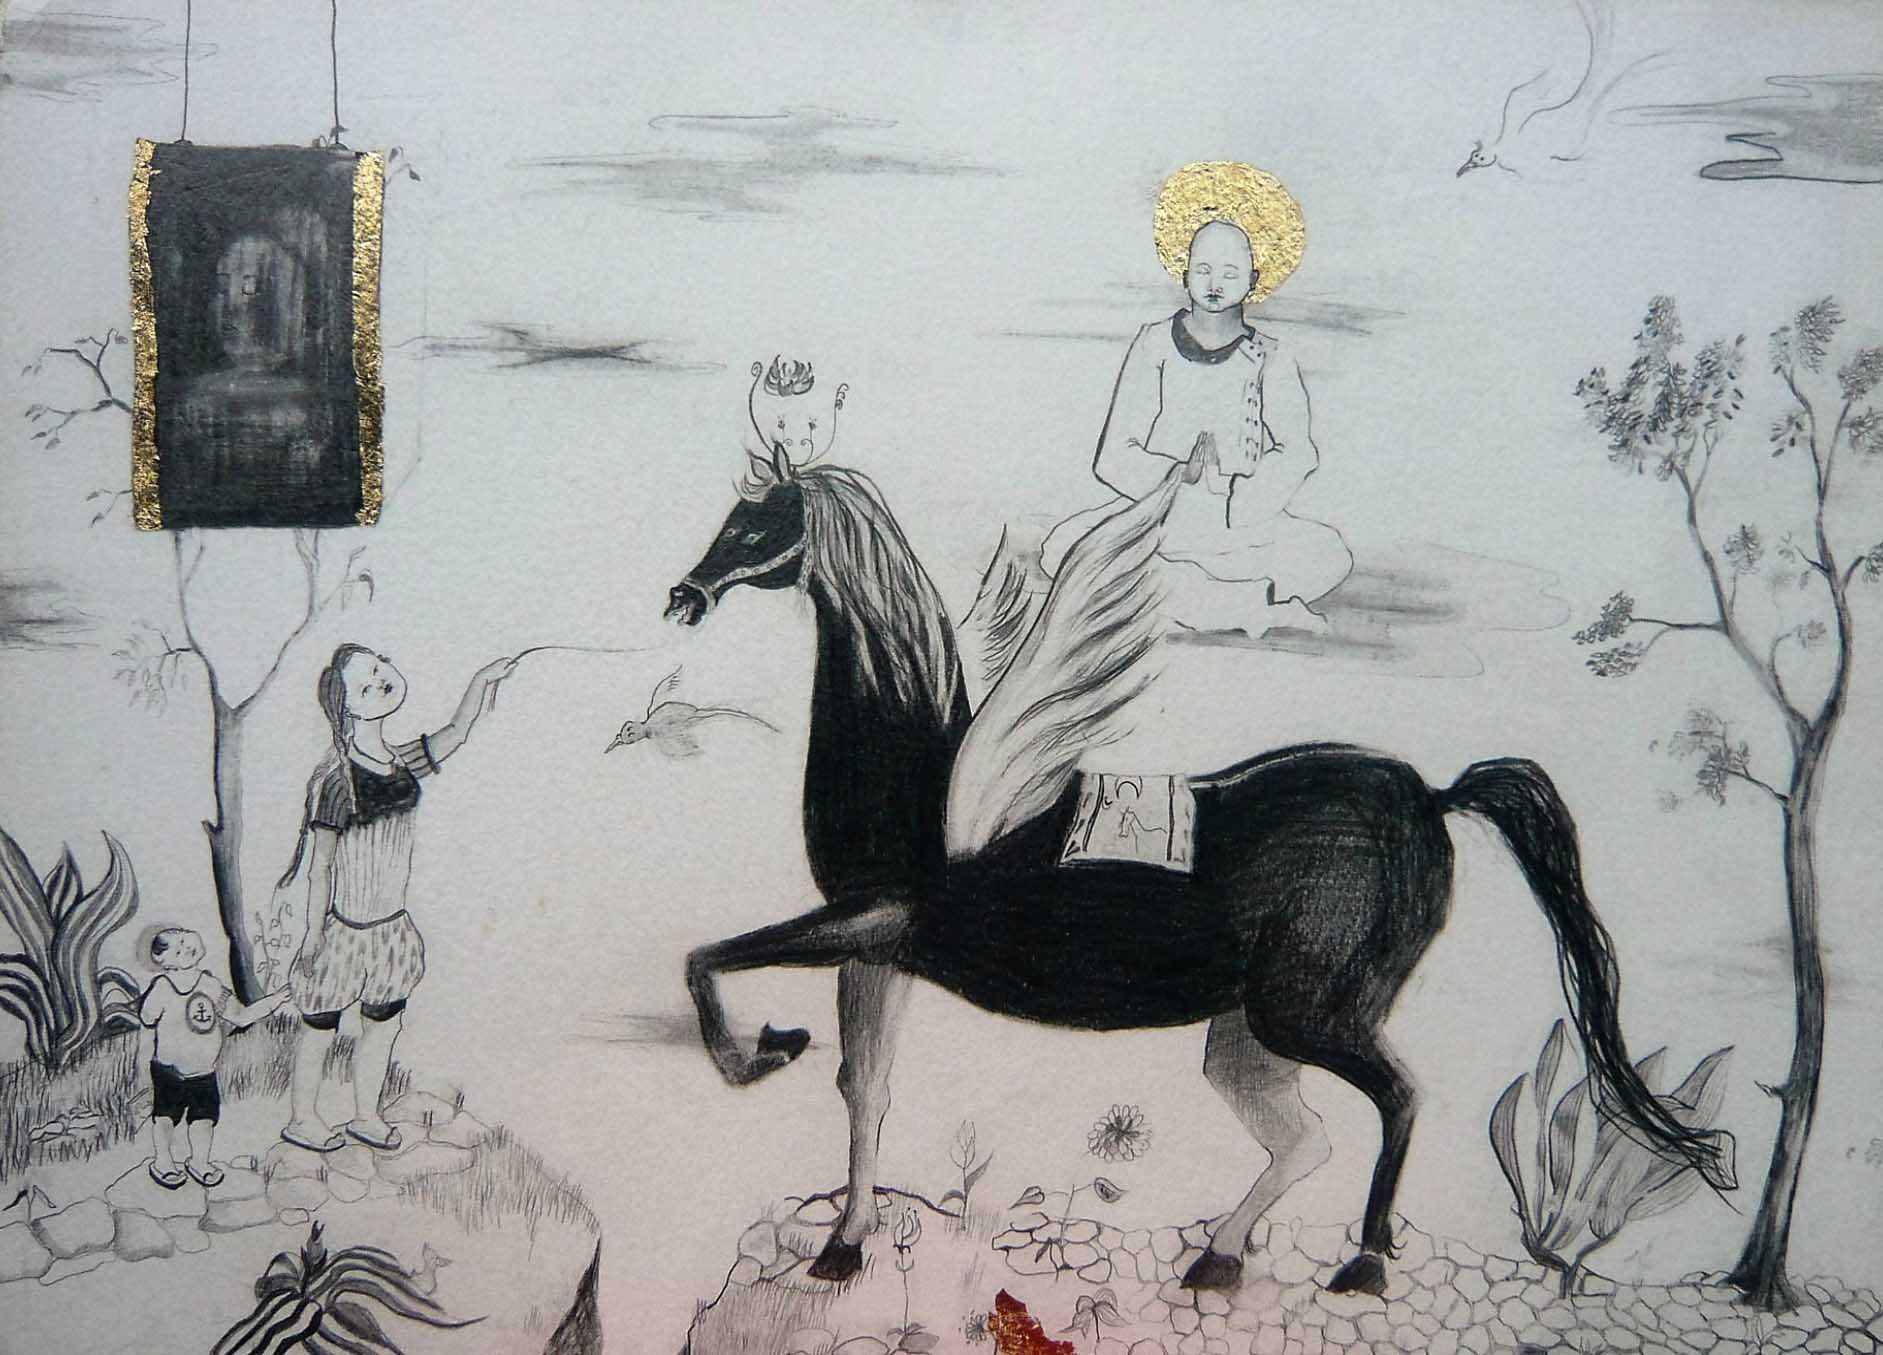 Flying Horse, 50 x 70 cm, 2011, Pencil and Plated Gold on Handmade Paper